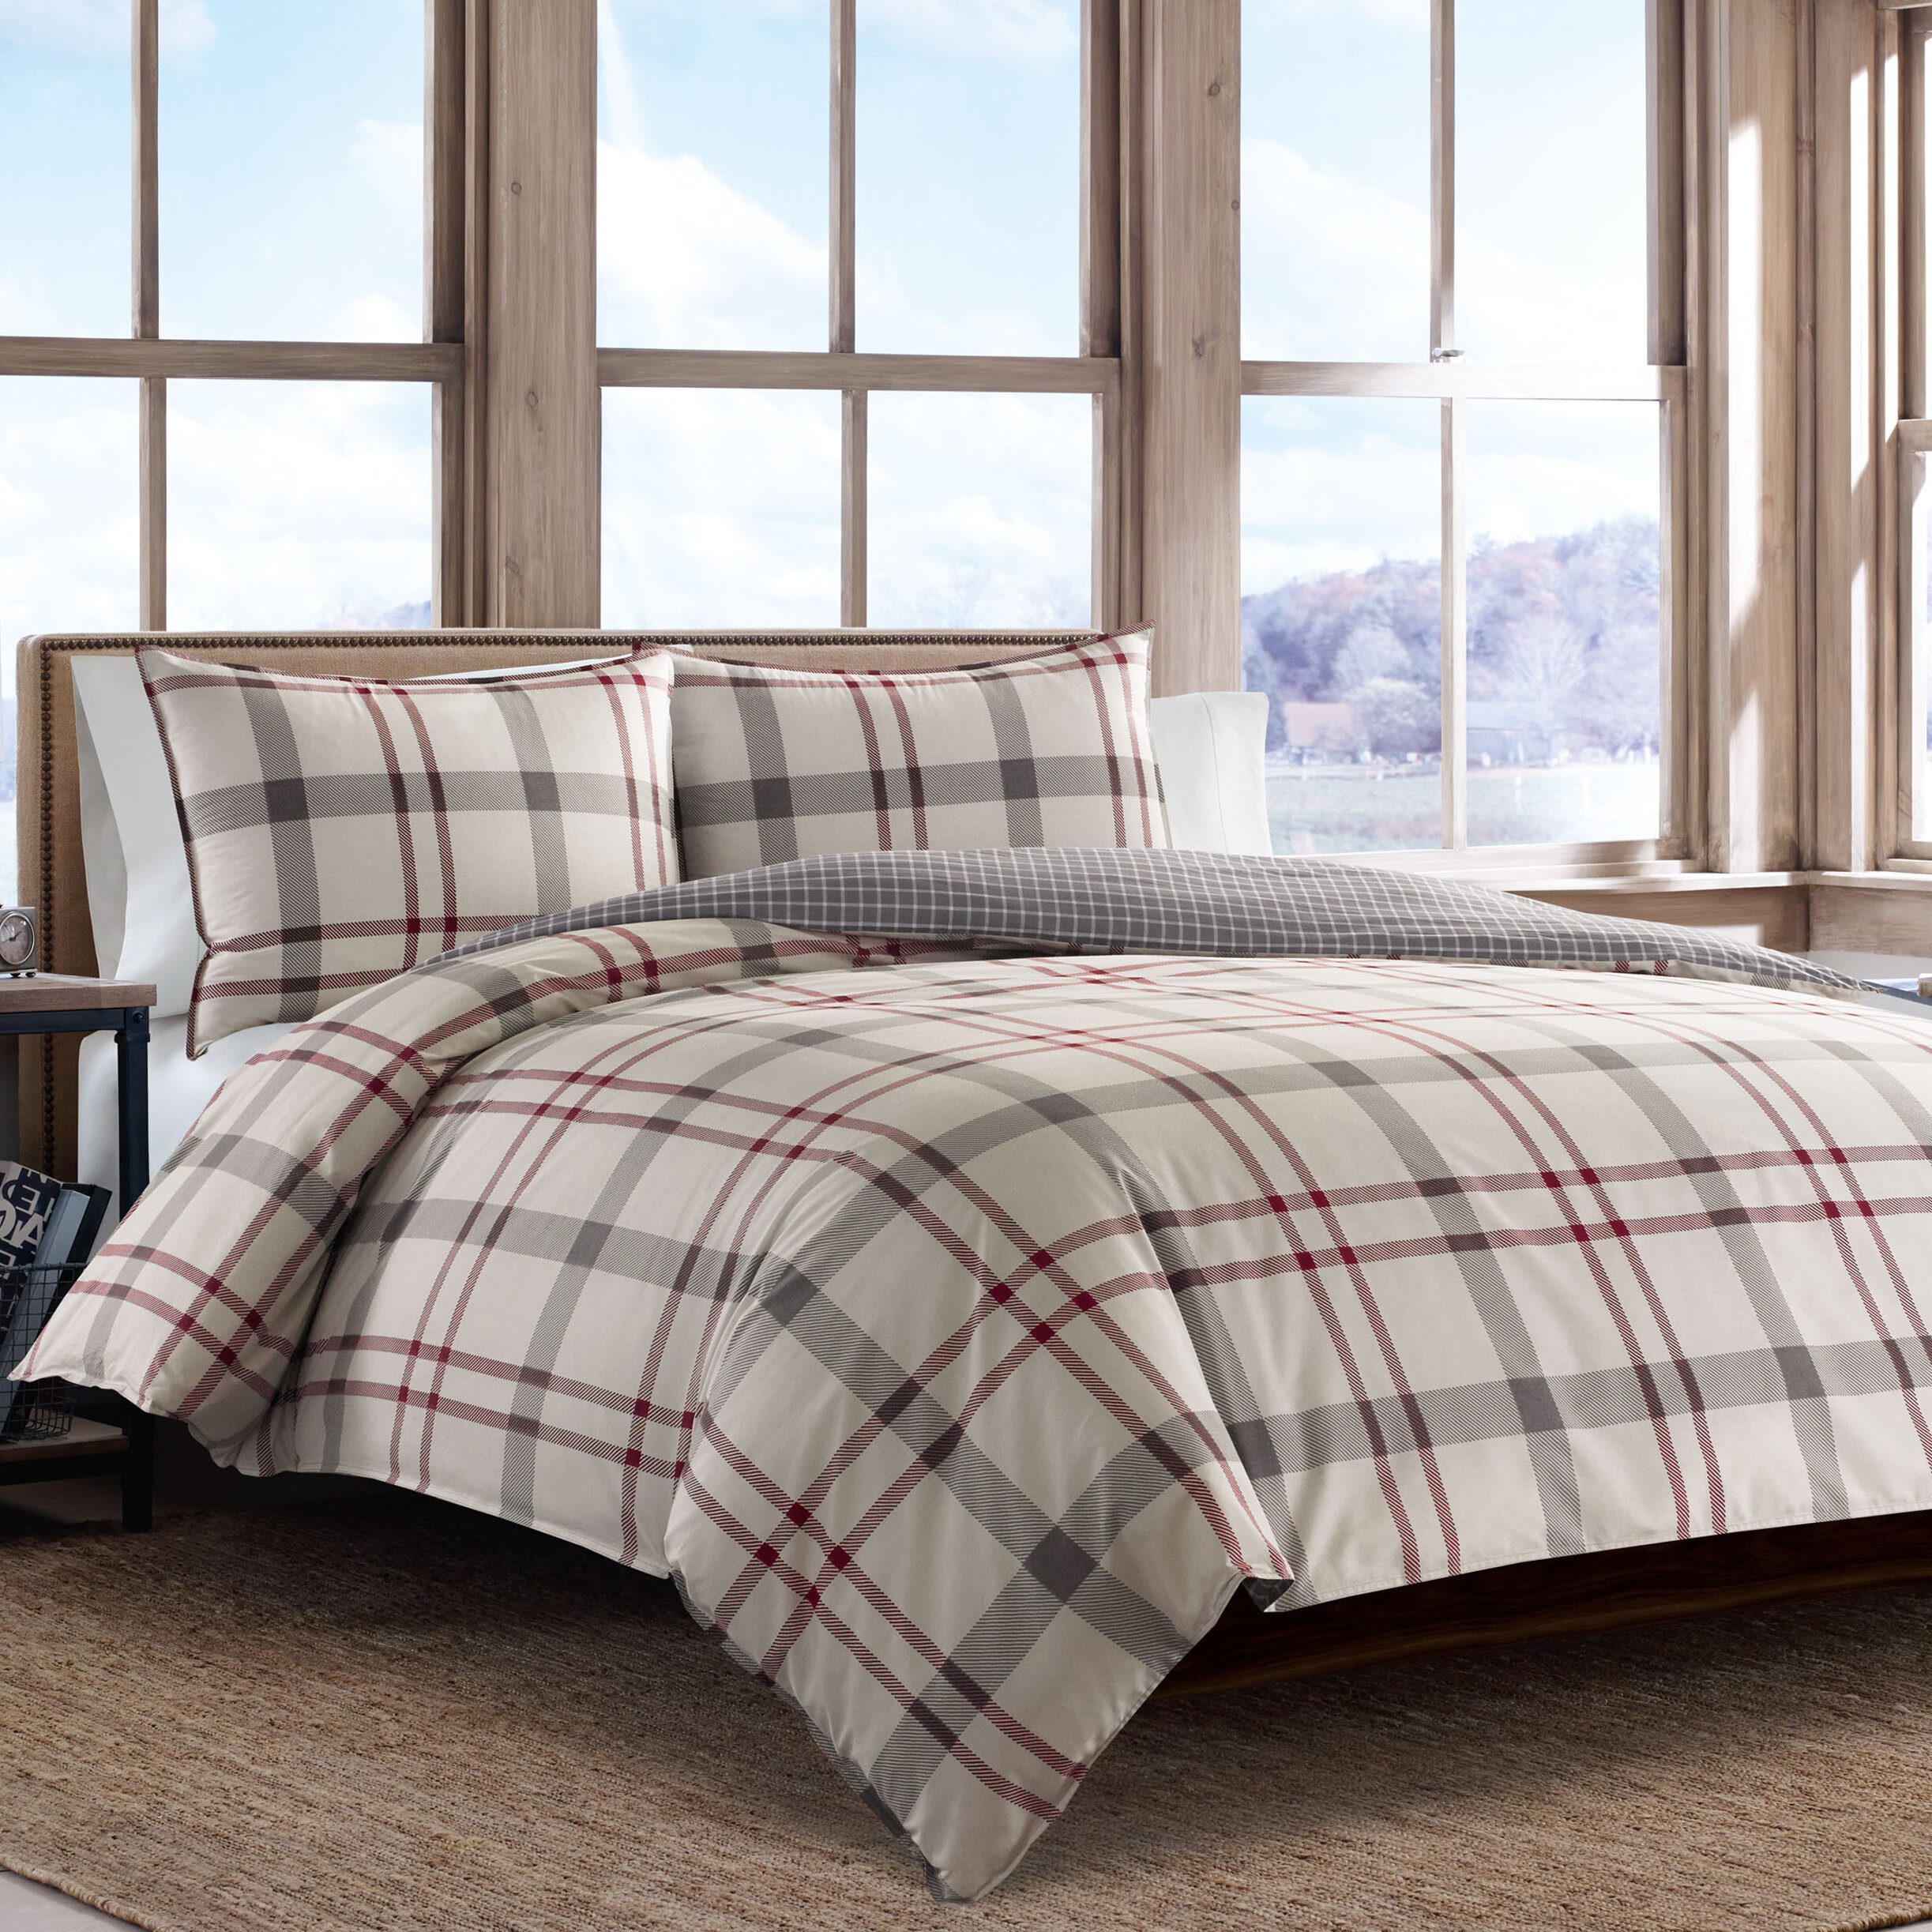 Eddie Bauer Portage Bay Reversible Duvet Cover Set Reviews Wayfair